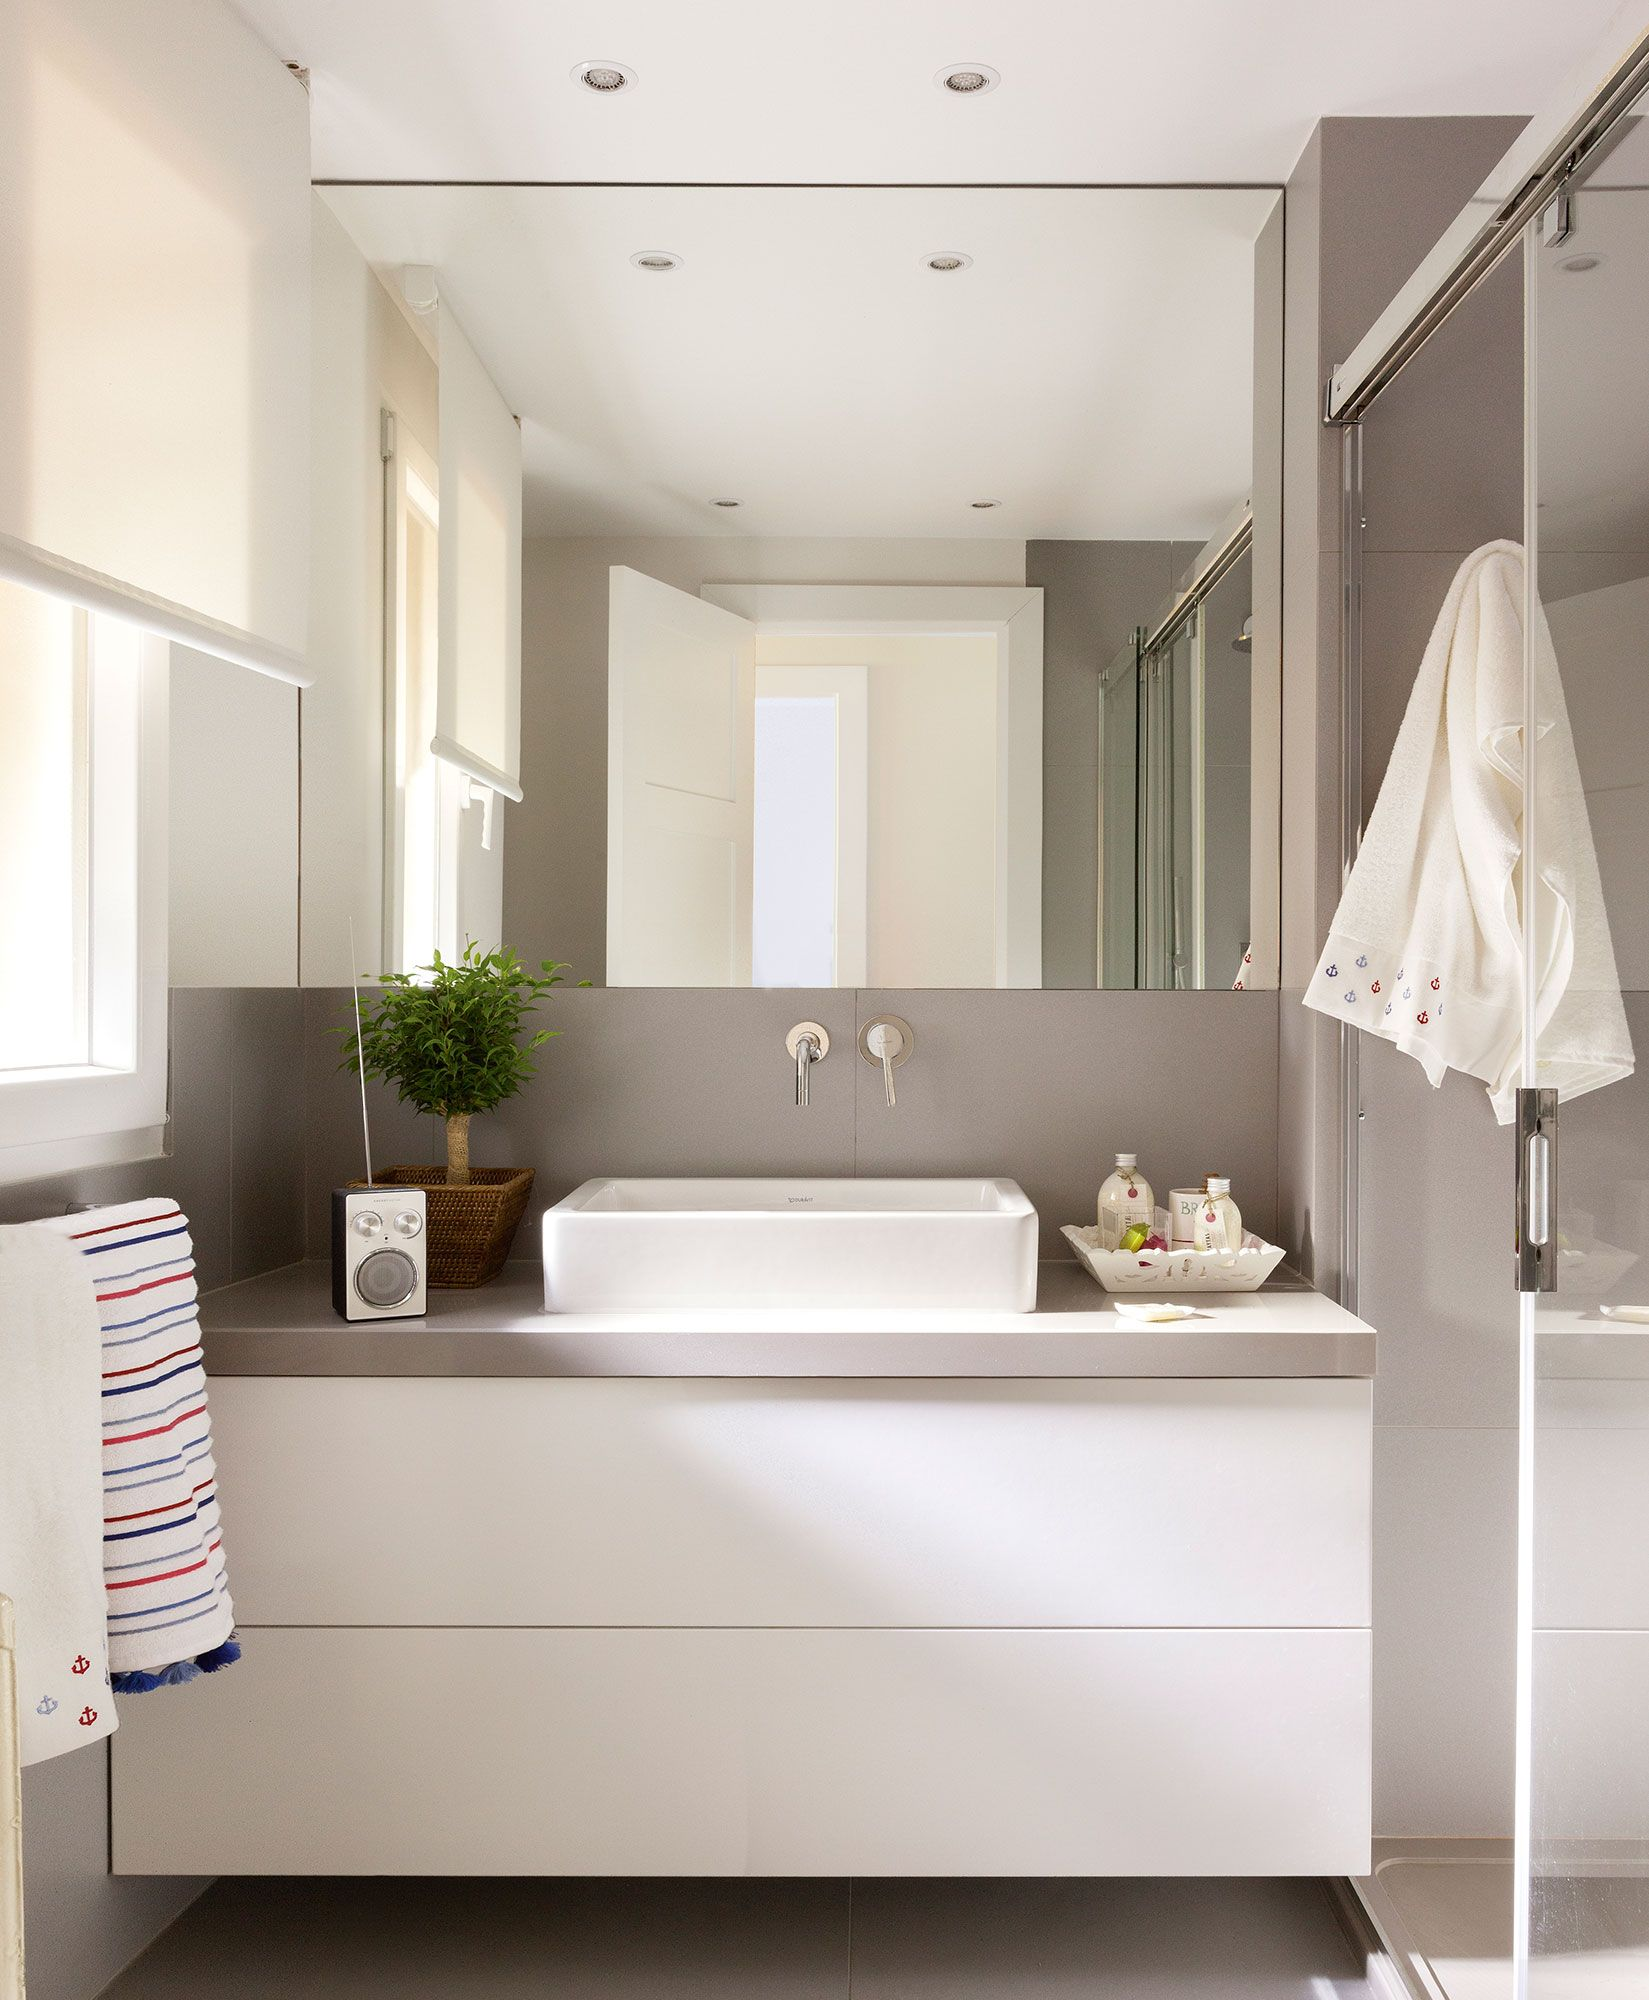 Espejos Bonitos Para Banos.Lavamanos Exentos Home Serene Bathroom Grey Bathrooms Y